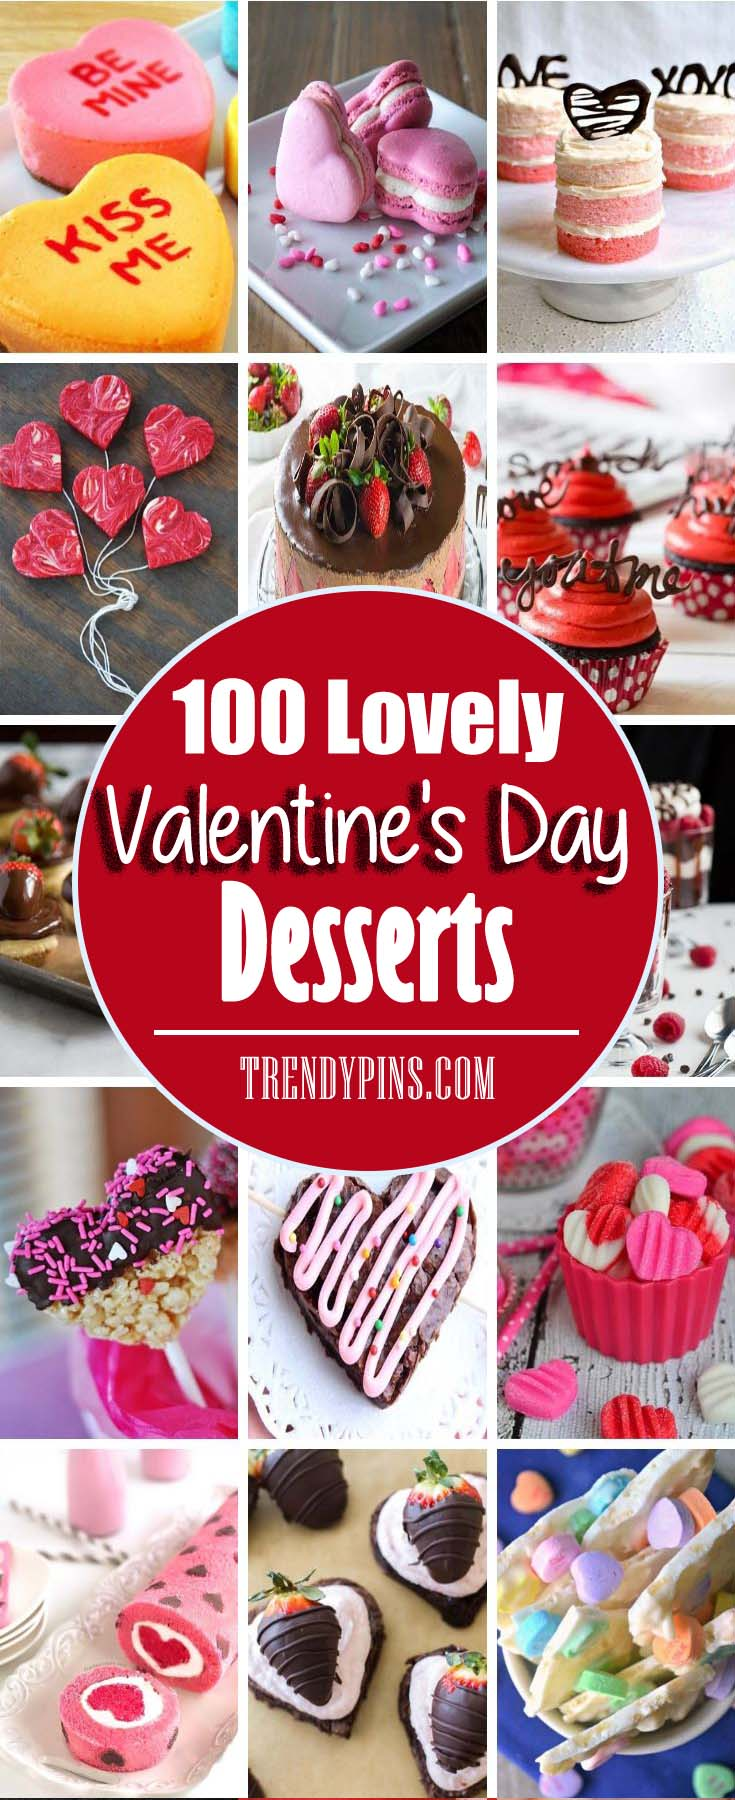 Enjoy these many treats from simple to complicated, for a delicious addition to a sweet holiday. #Valentine's Day #recipes #desserts #trendypins